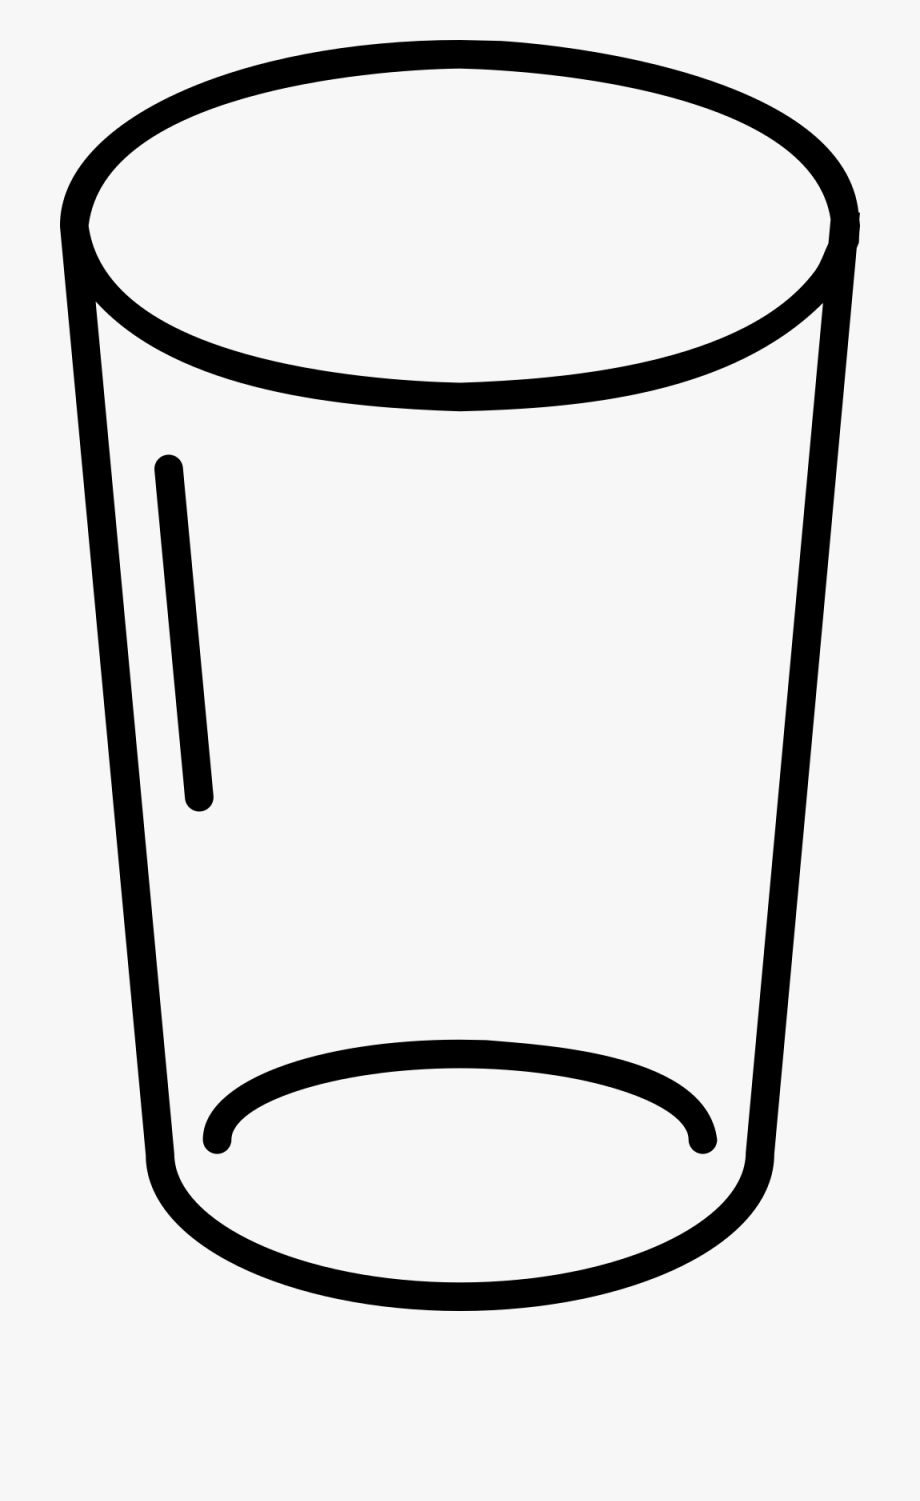 water glass coloring pages png free water glass coloring pages png transparent images 118090 pngio water glass coloring pages png free